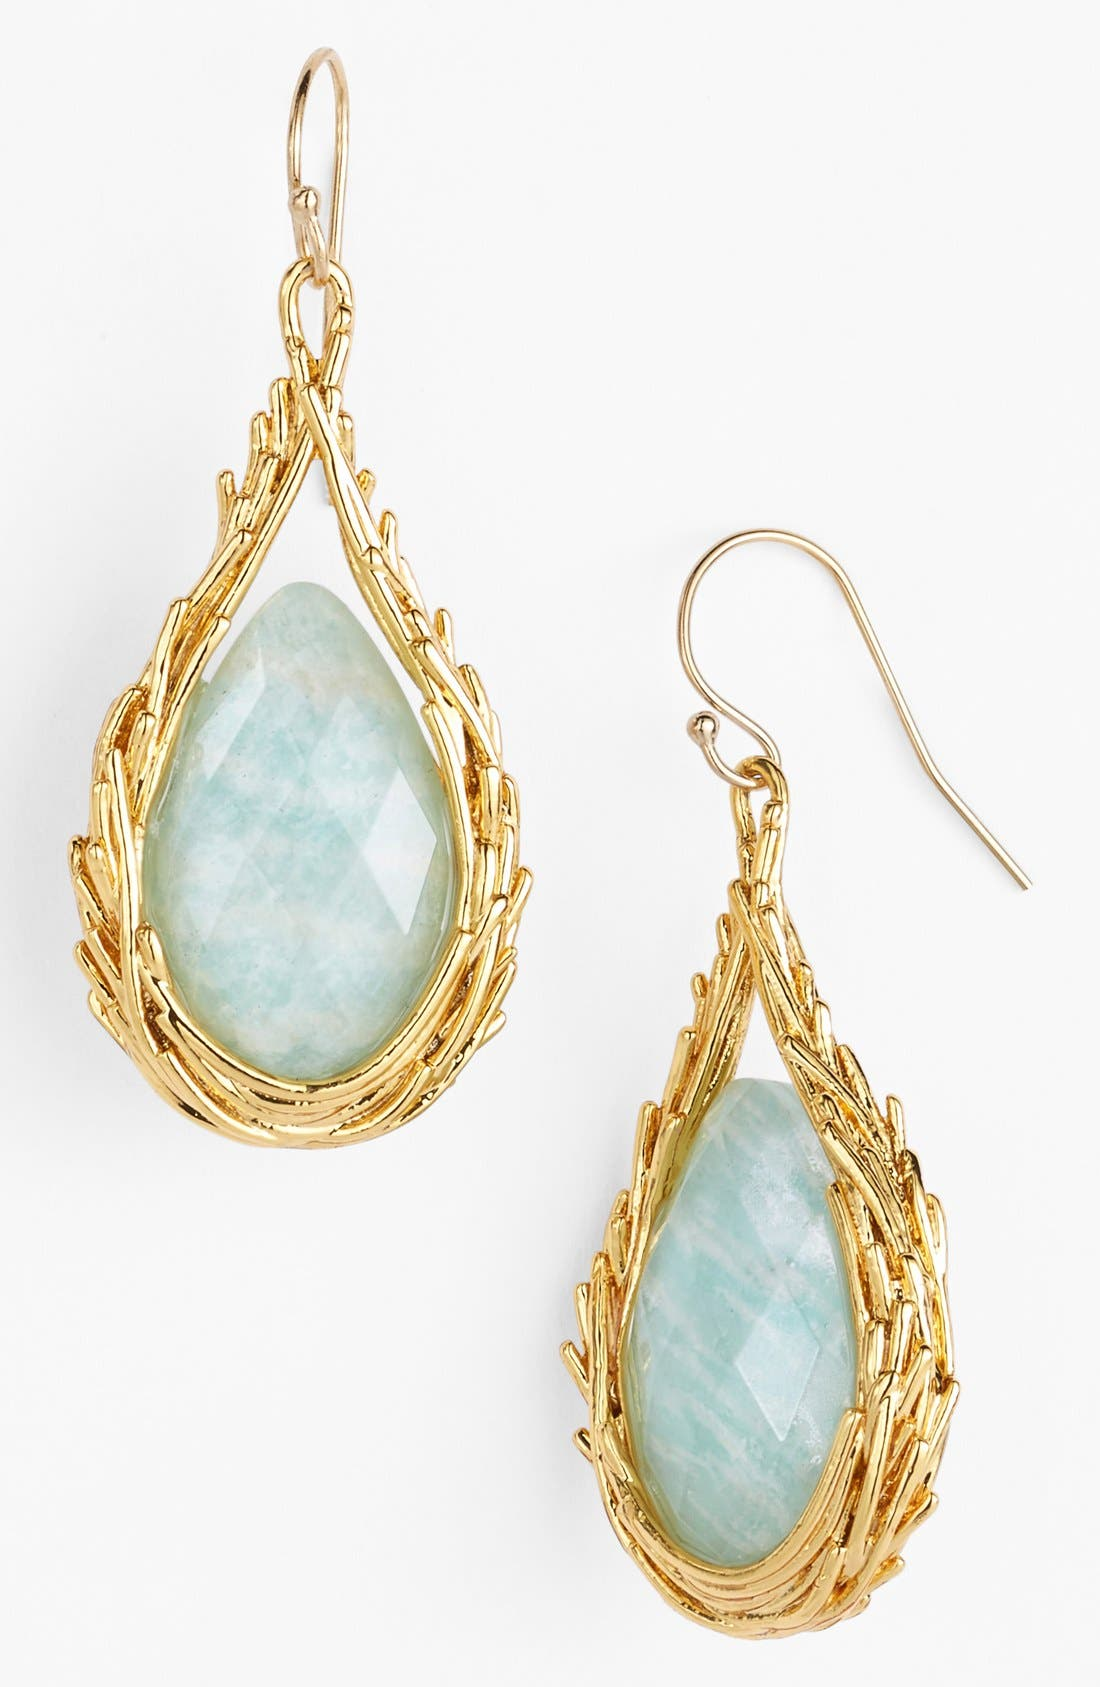 Main Image - Alexis Bittar 'Elements - Maldivian' Teardrop Earrings